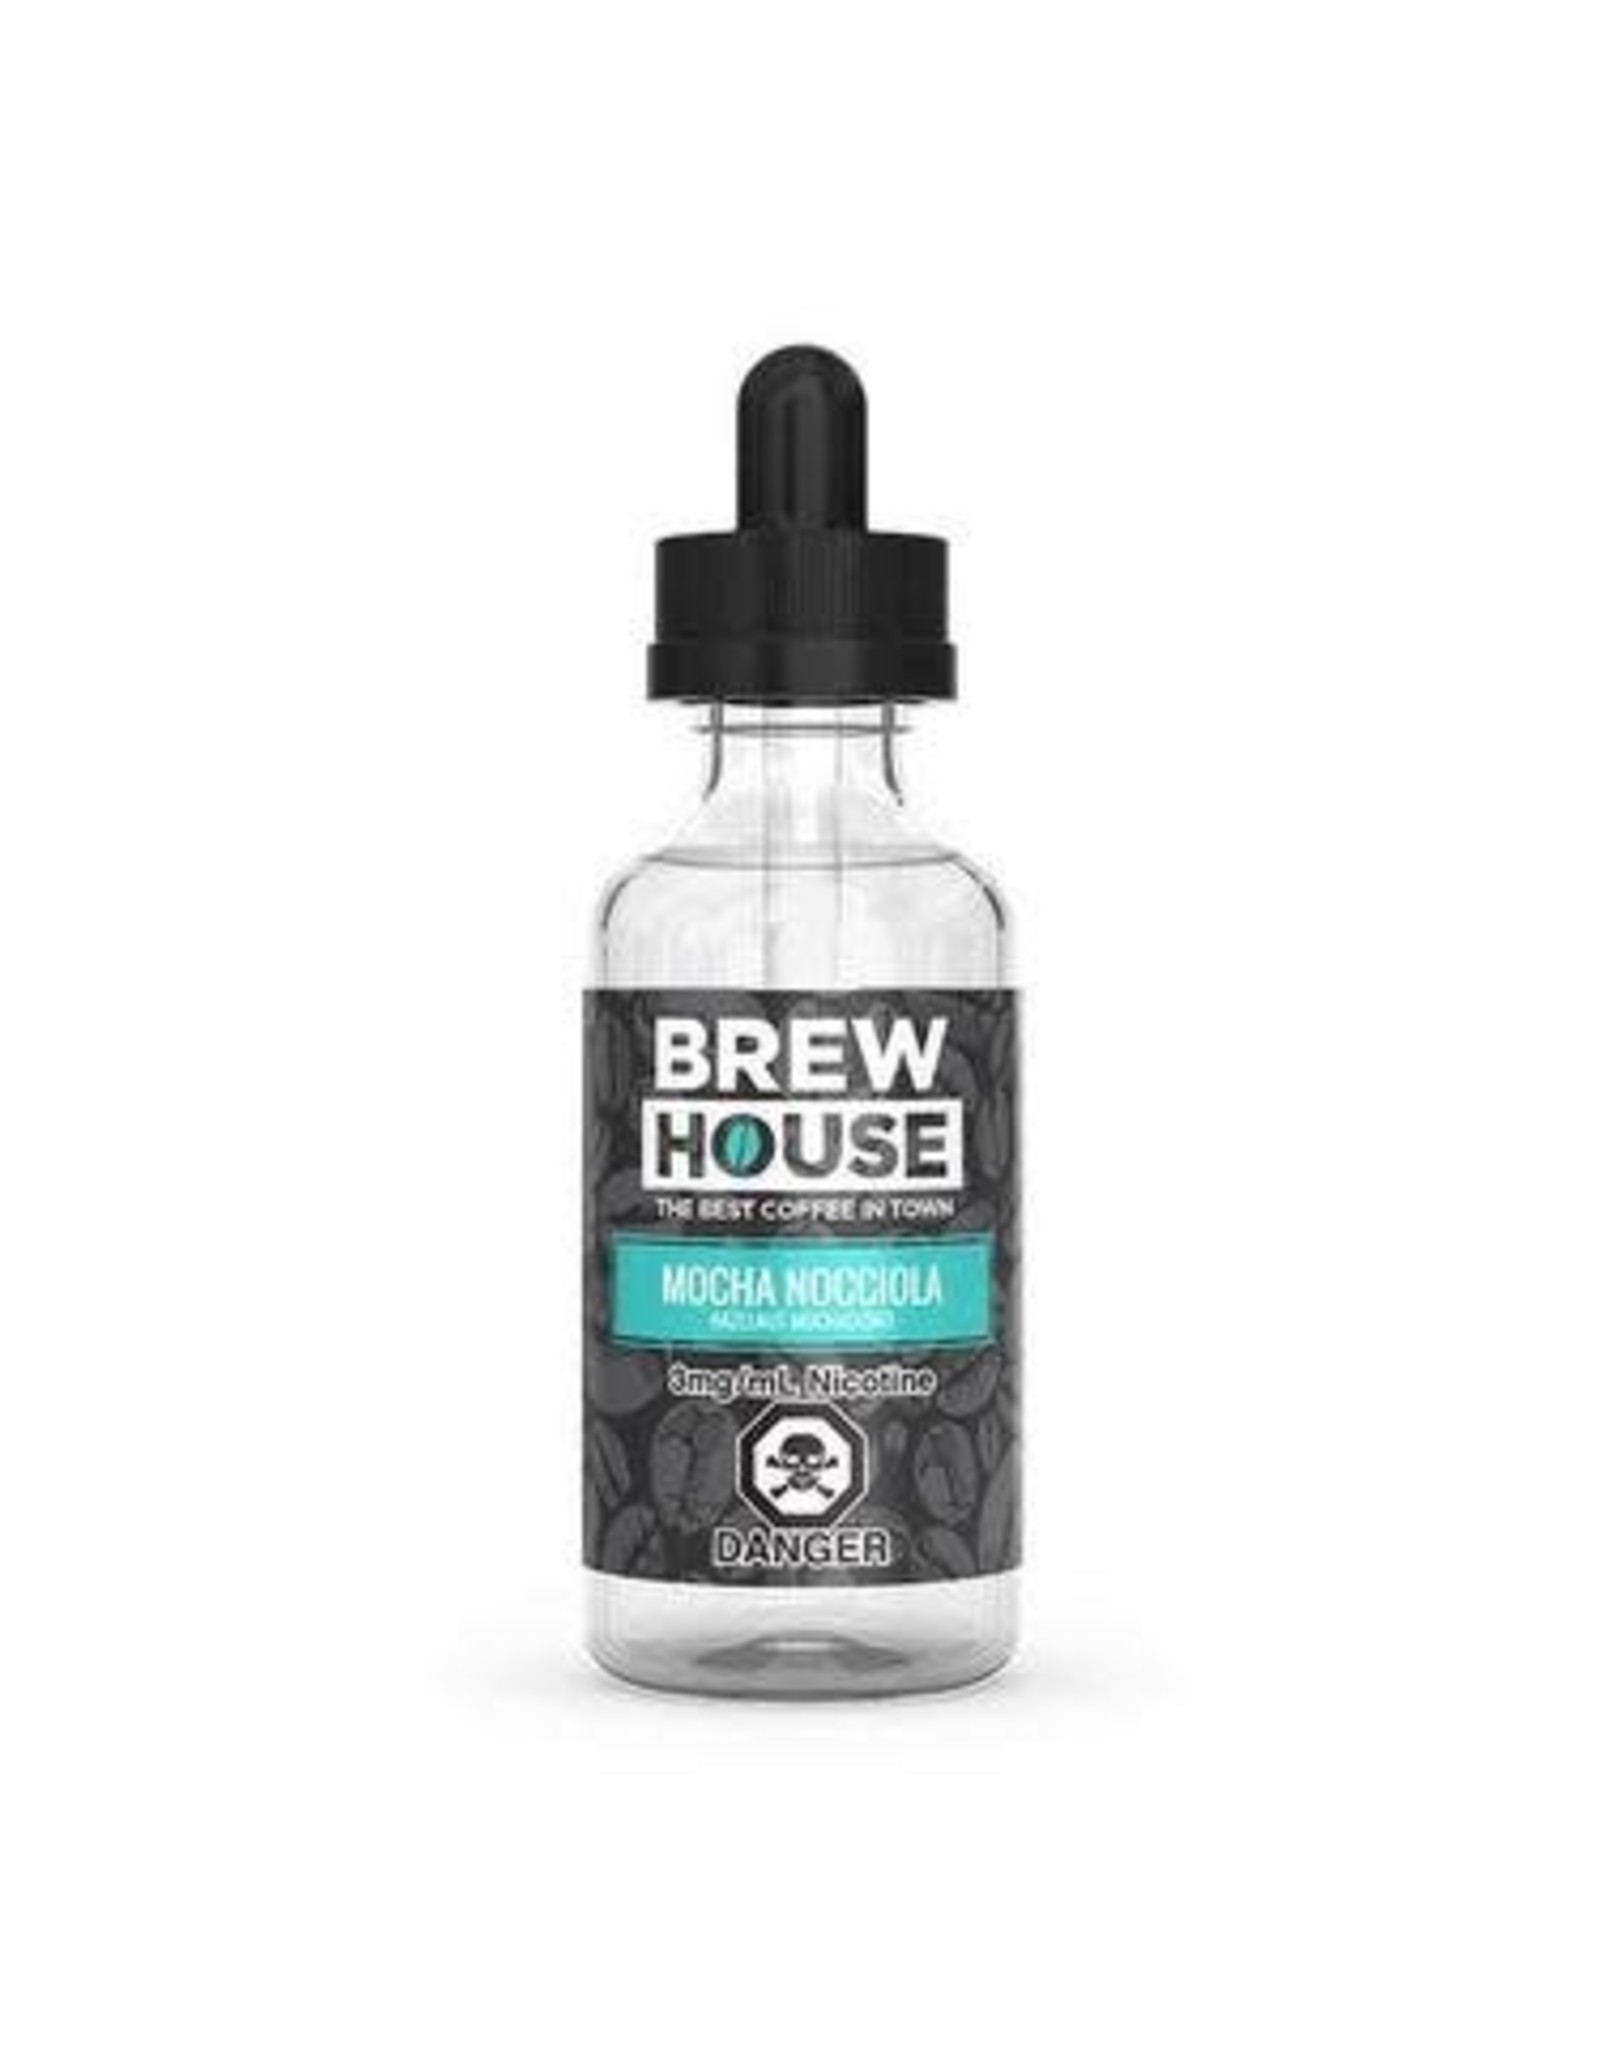 BREW HOUSE MOCHA NOCCIOLA BY BREW HOUSE(60ml)